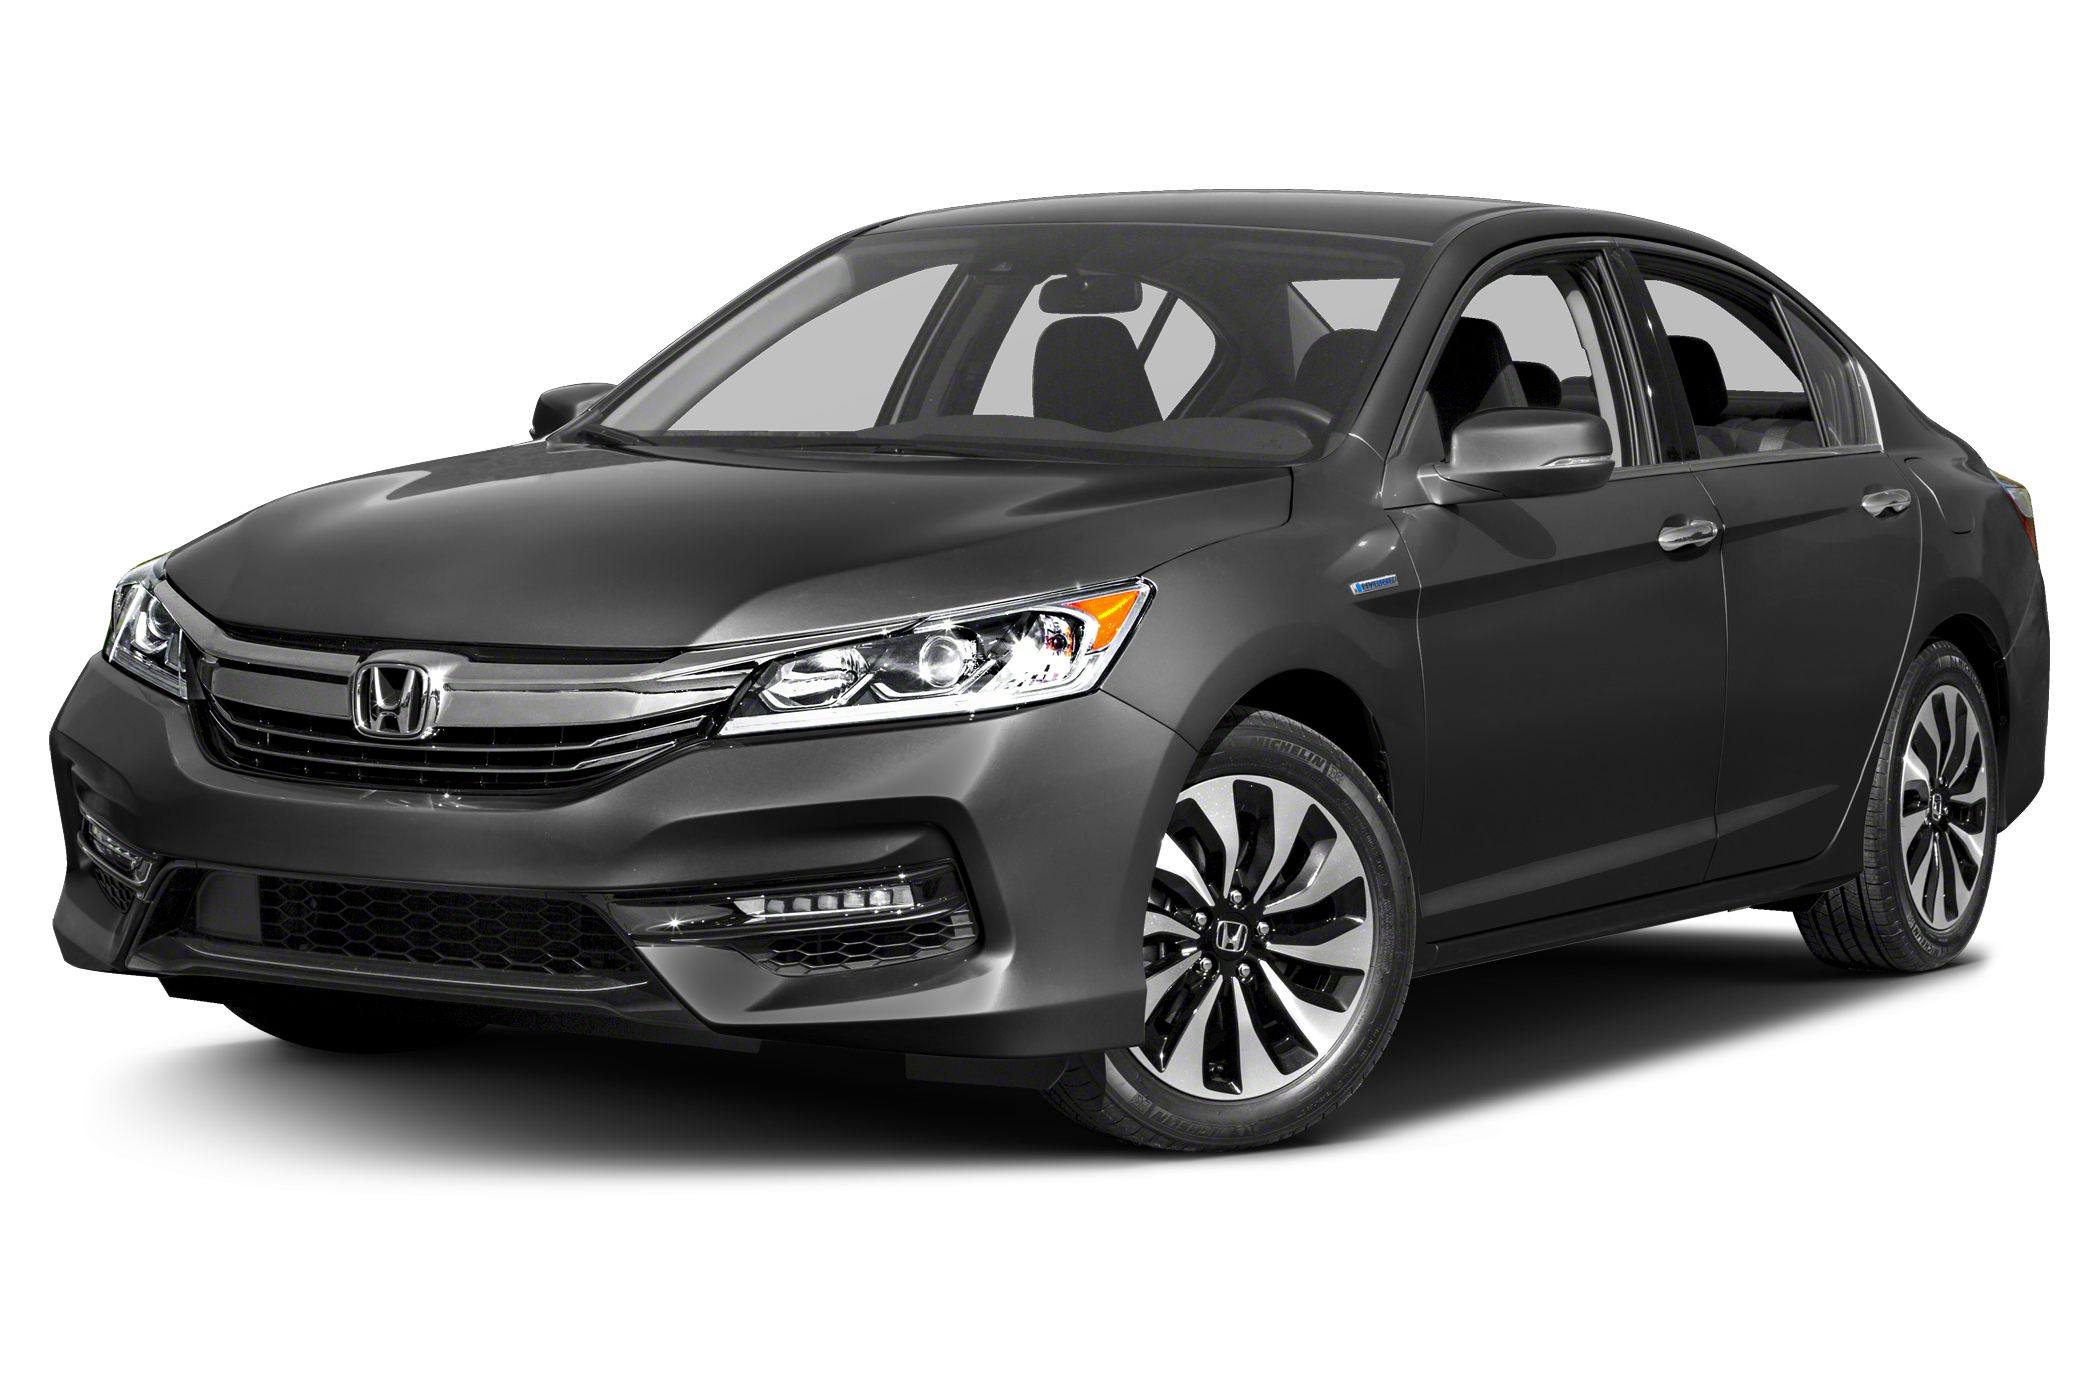 2017 Accord Hybrid Owner Reviews